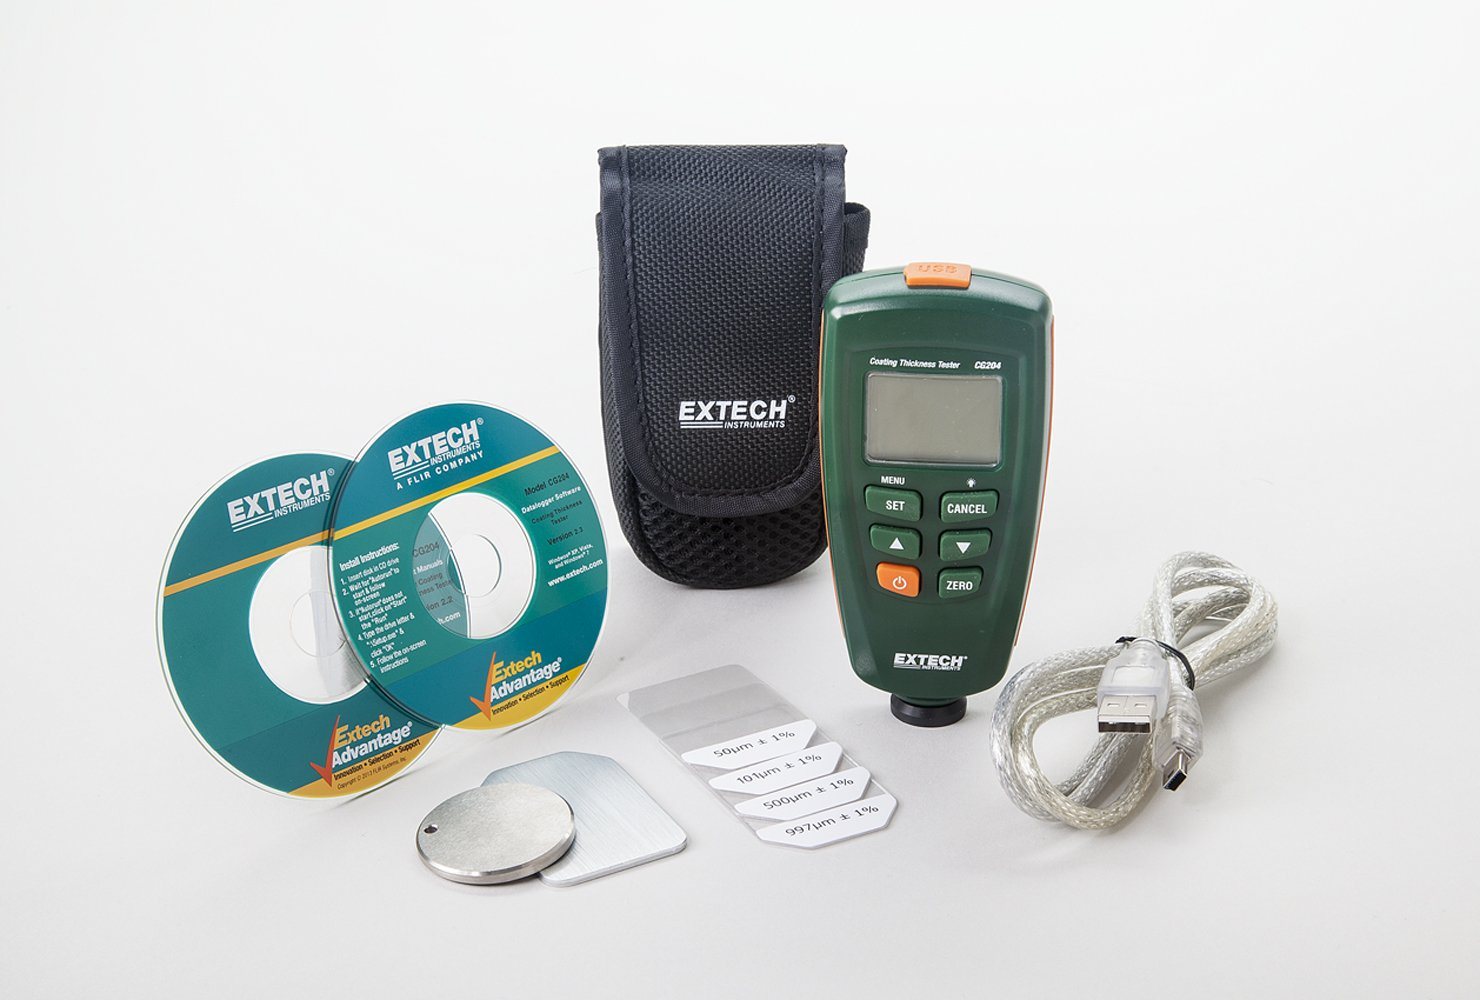 Extech Instruments CG204 Coating Thickness Meter